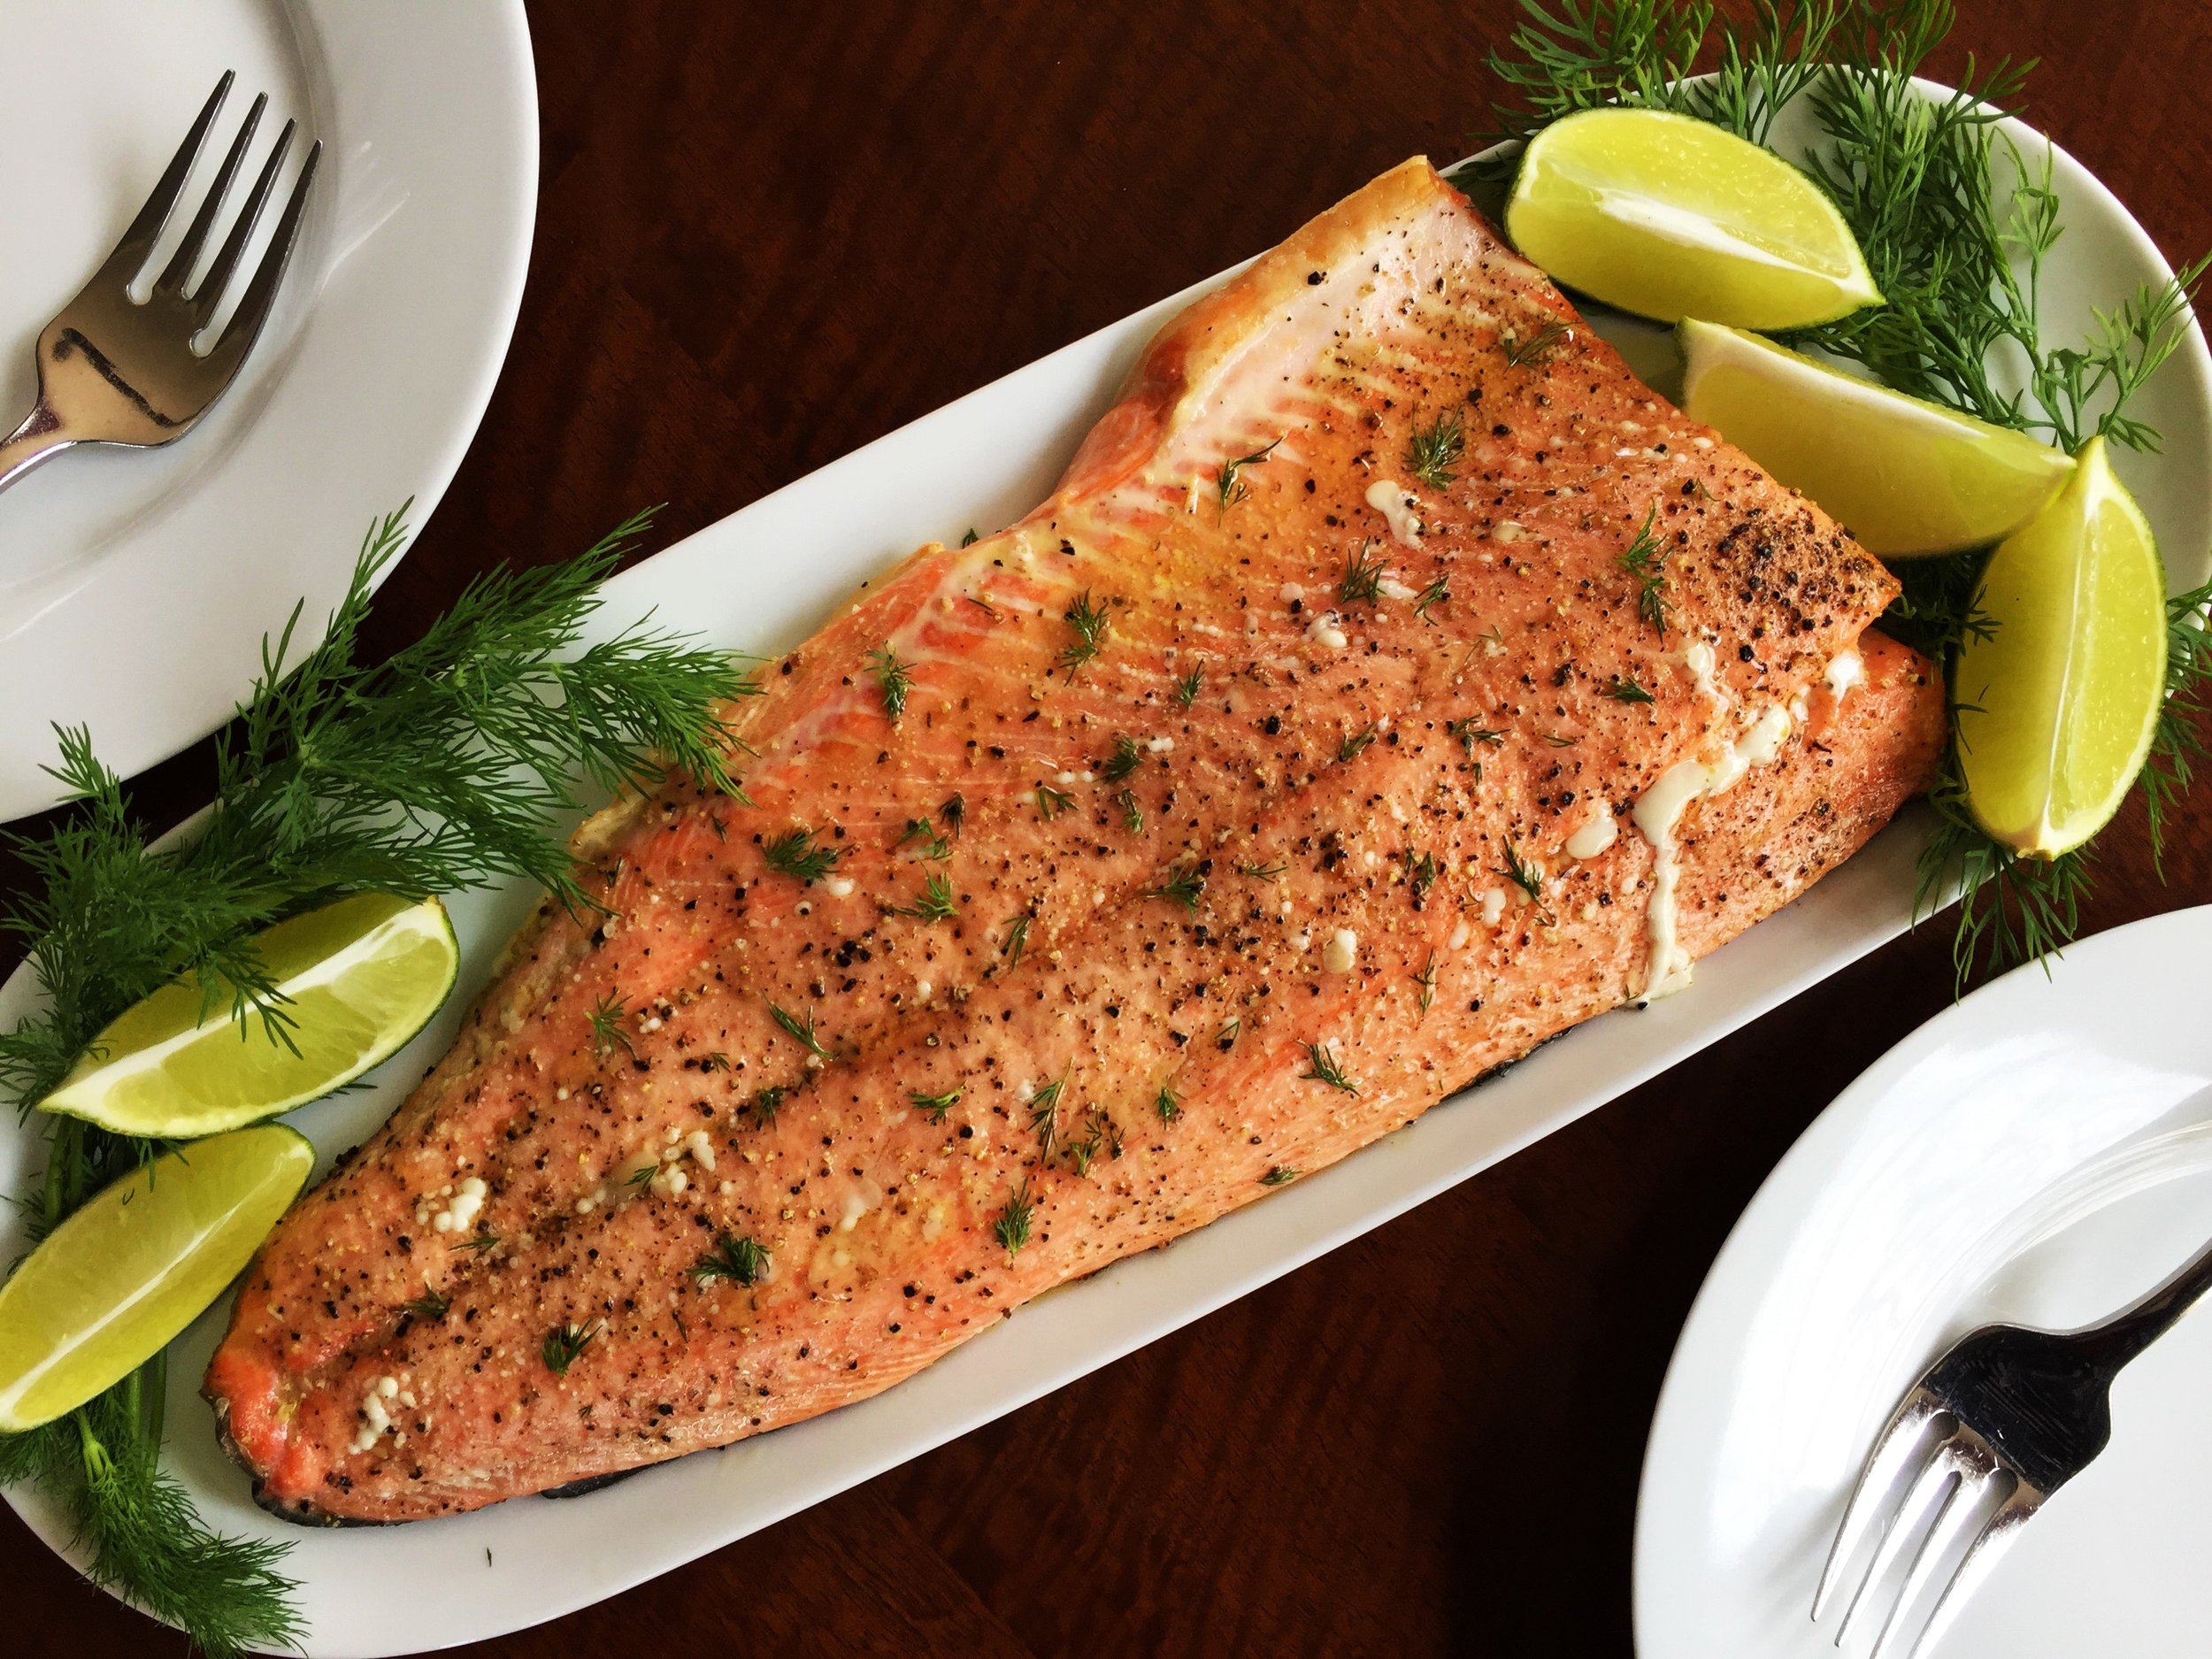 Baked Salmon with Fresh Dill and Lime made in the Adventure Kitchen.